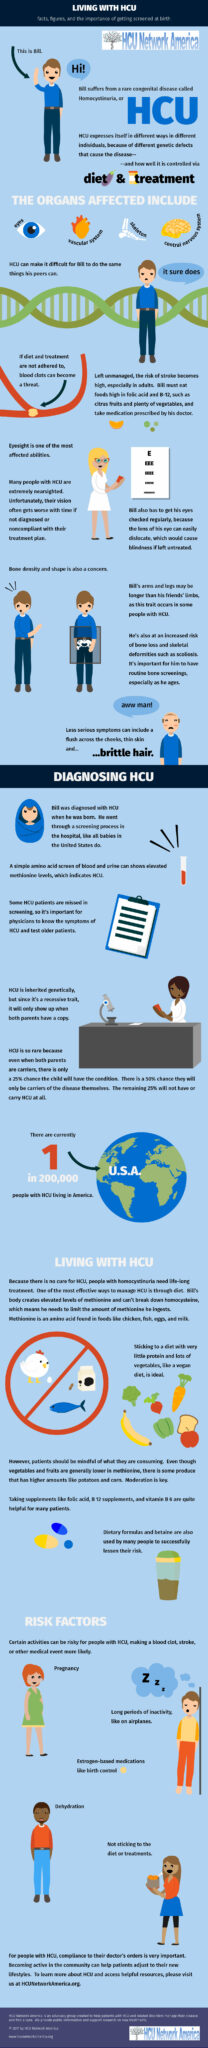 HCU Network Infographic for web-01